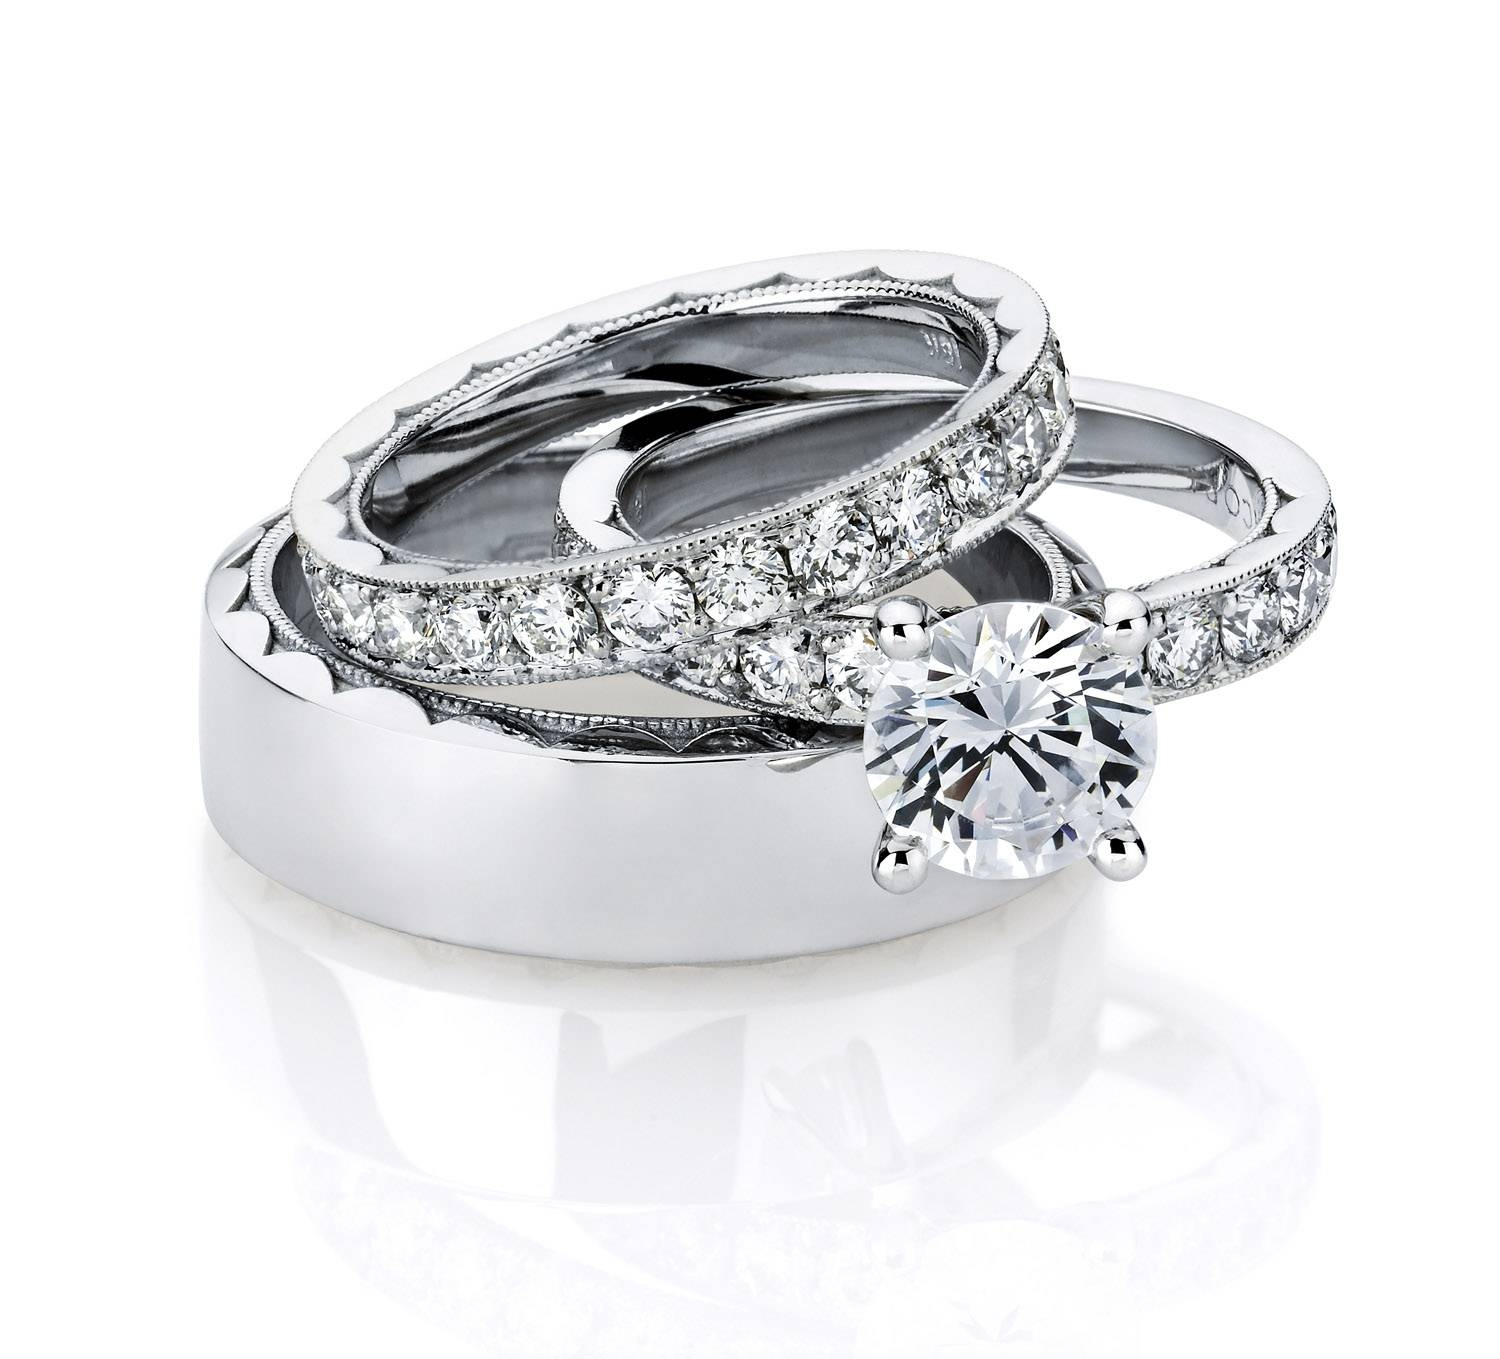 Wedding Rings Sets For Him And Her | Wedding, Promise, Diamond Inside Wedding Bands Sets For Him And Her (View 14 of 15)